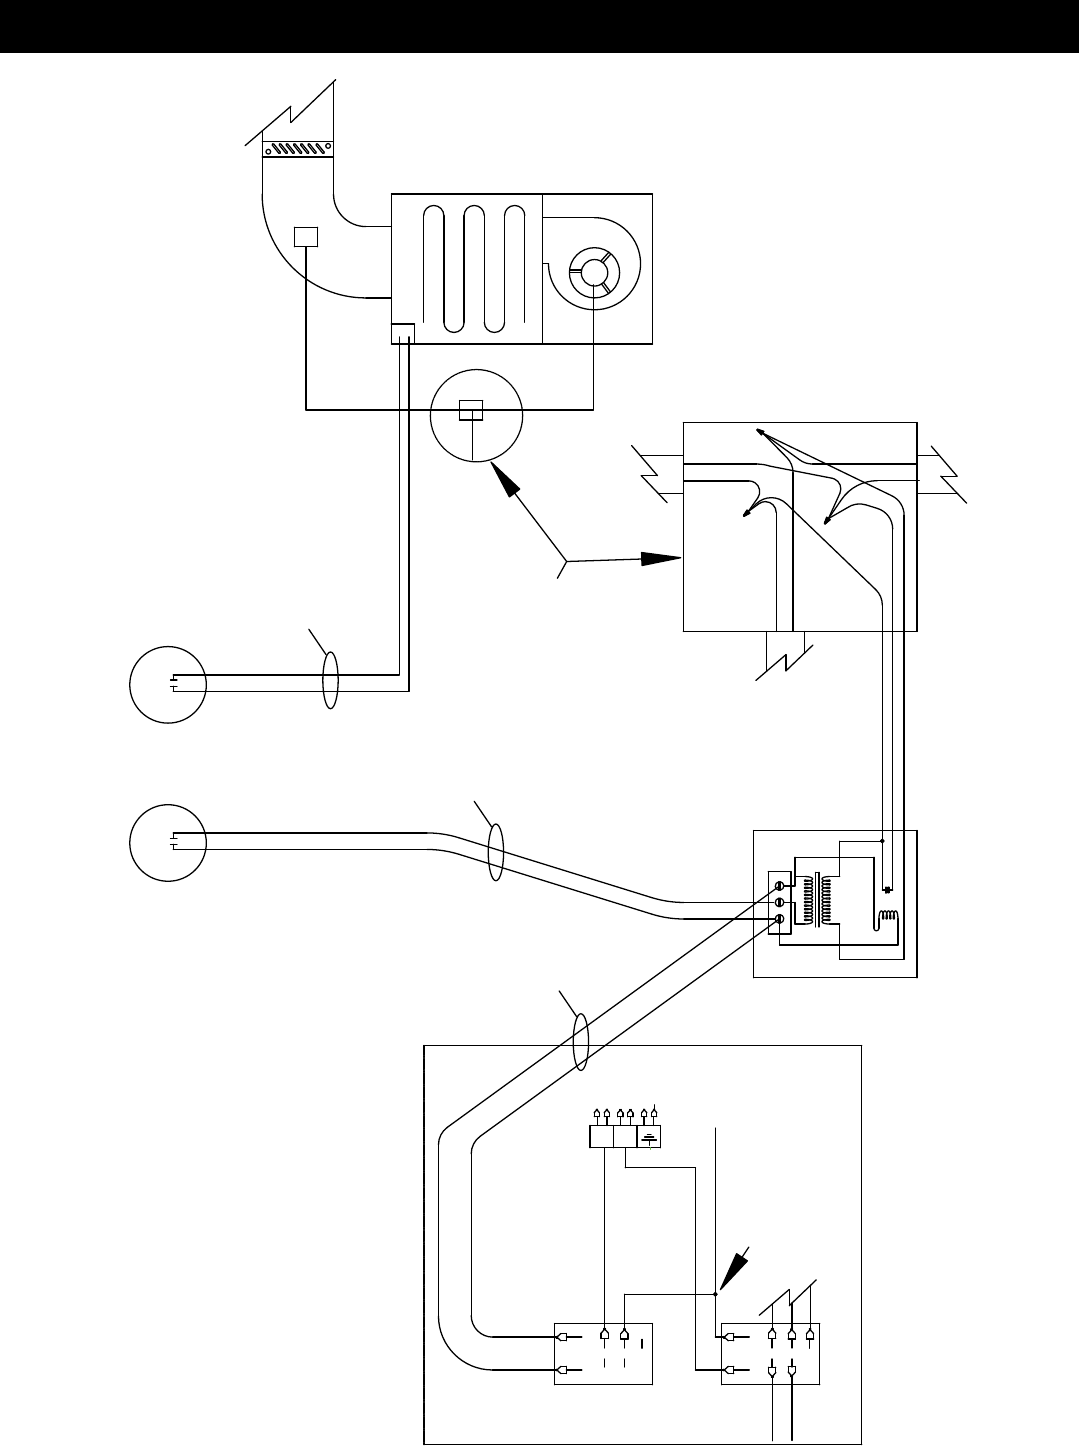 11b616a8 fe25 4037 9676 a3e4c5a95c73 bg17 page 23 of heatiator boiler bh60 user guide manualsonline com honeywell r8285a1048 wiring diagram at mr168.co